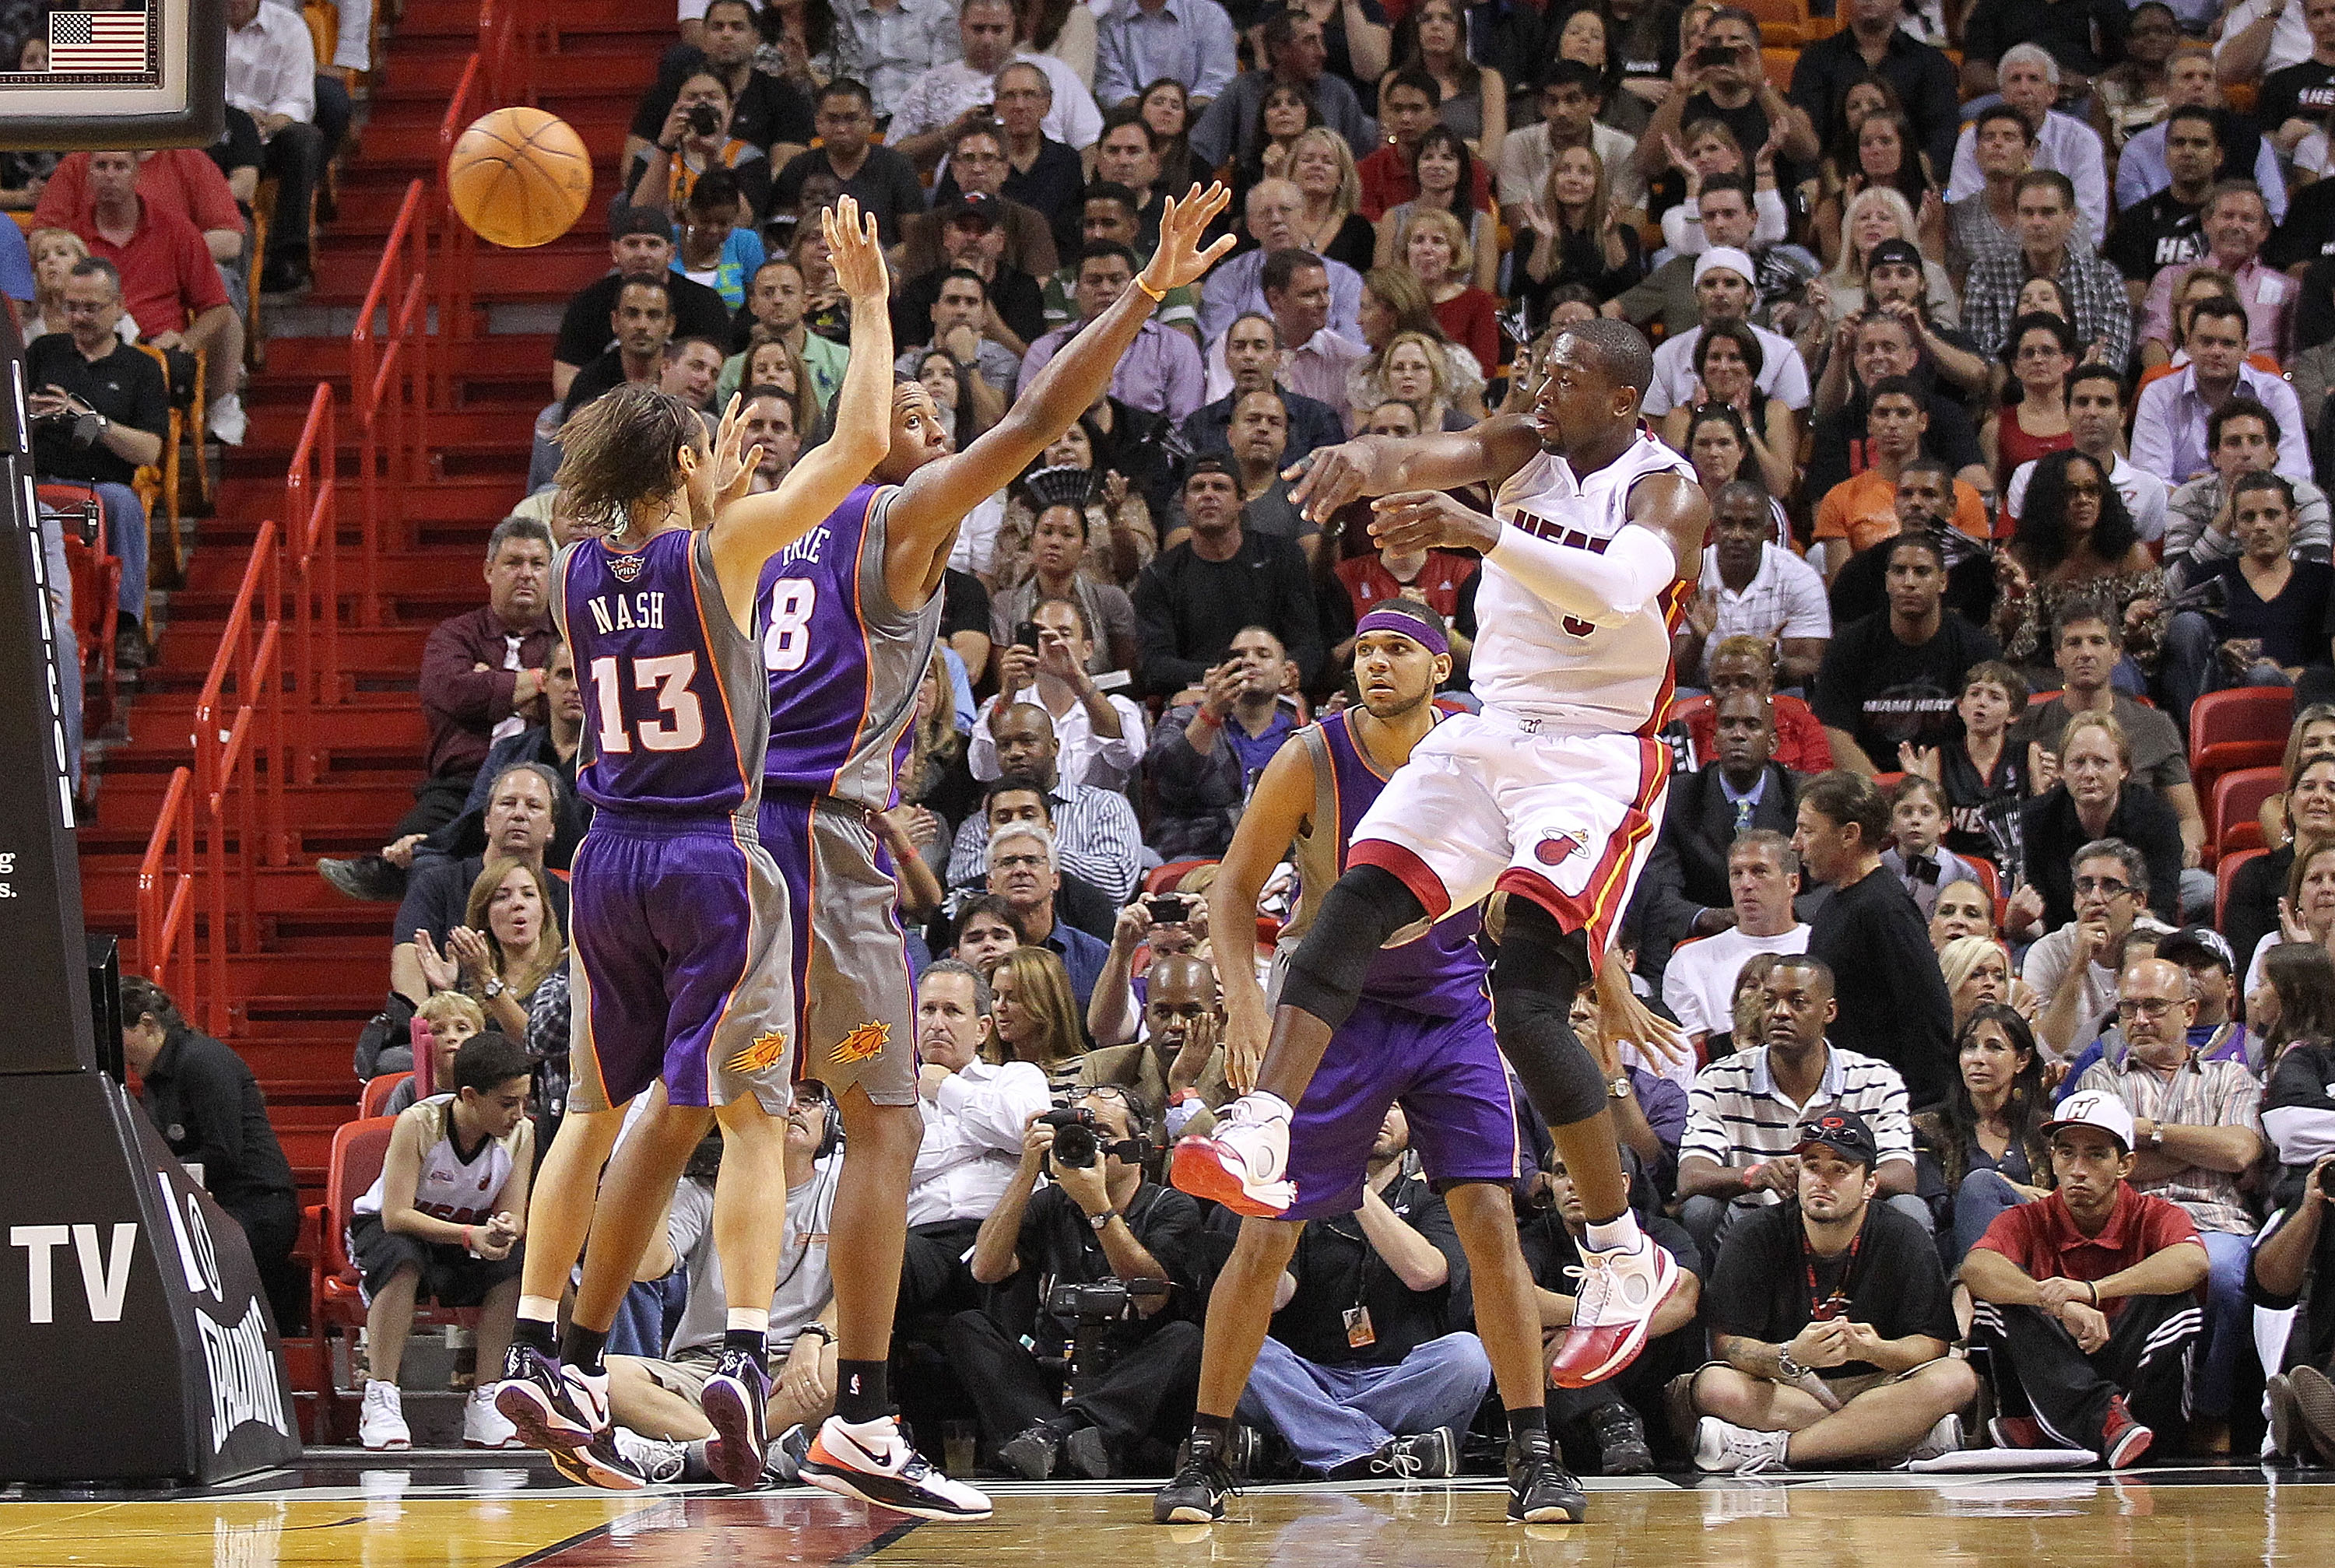 MIAMI - NOVEMBER 17:  Dwyane Wade #3 of the Miami Heat passes the ball over Steve Nash #13 during a game against the Phoenix Suns at American Airlines Arena on November 17, 2010 in Miami, Florida. NOTE TO USER: User expressly acknowledges and agrees that,